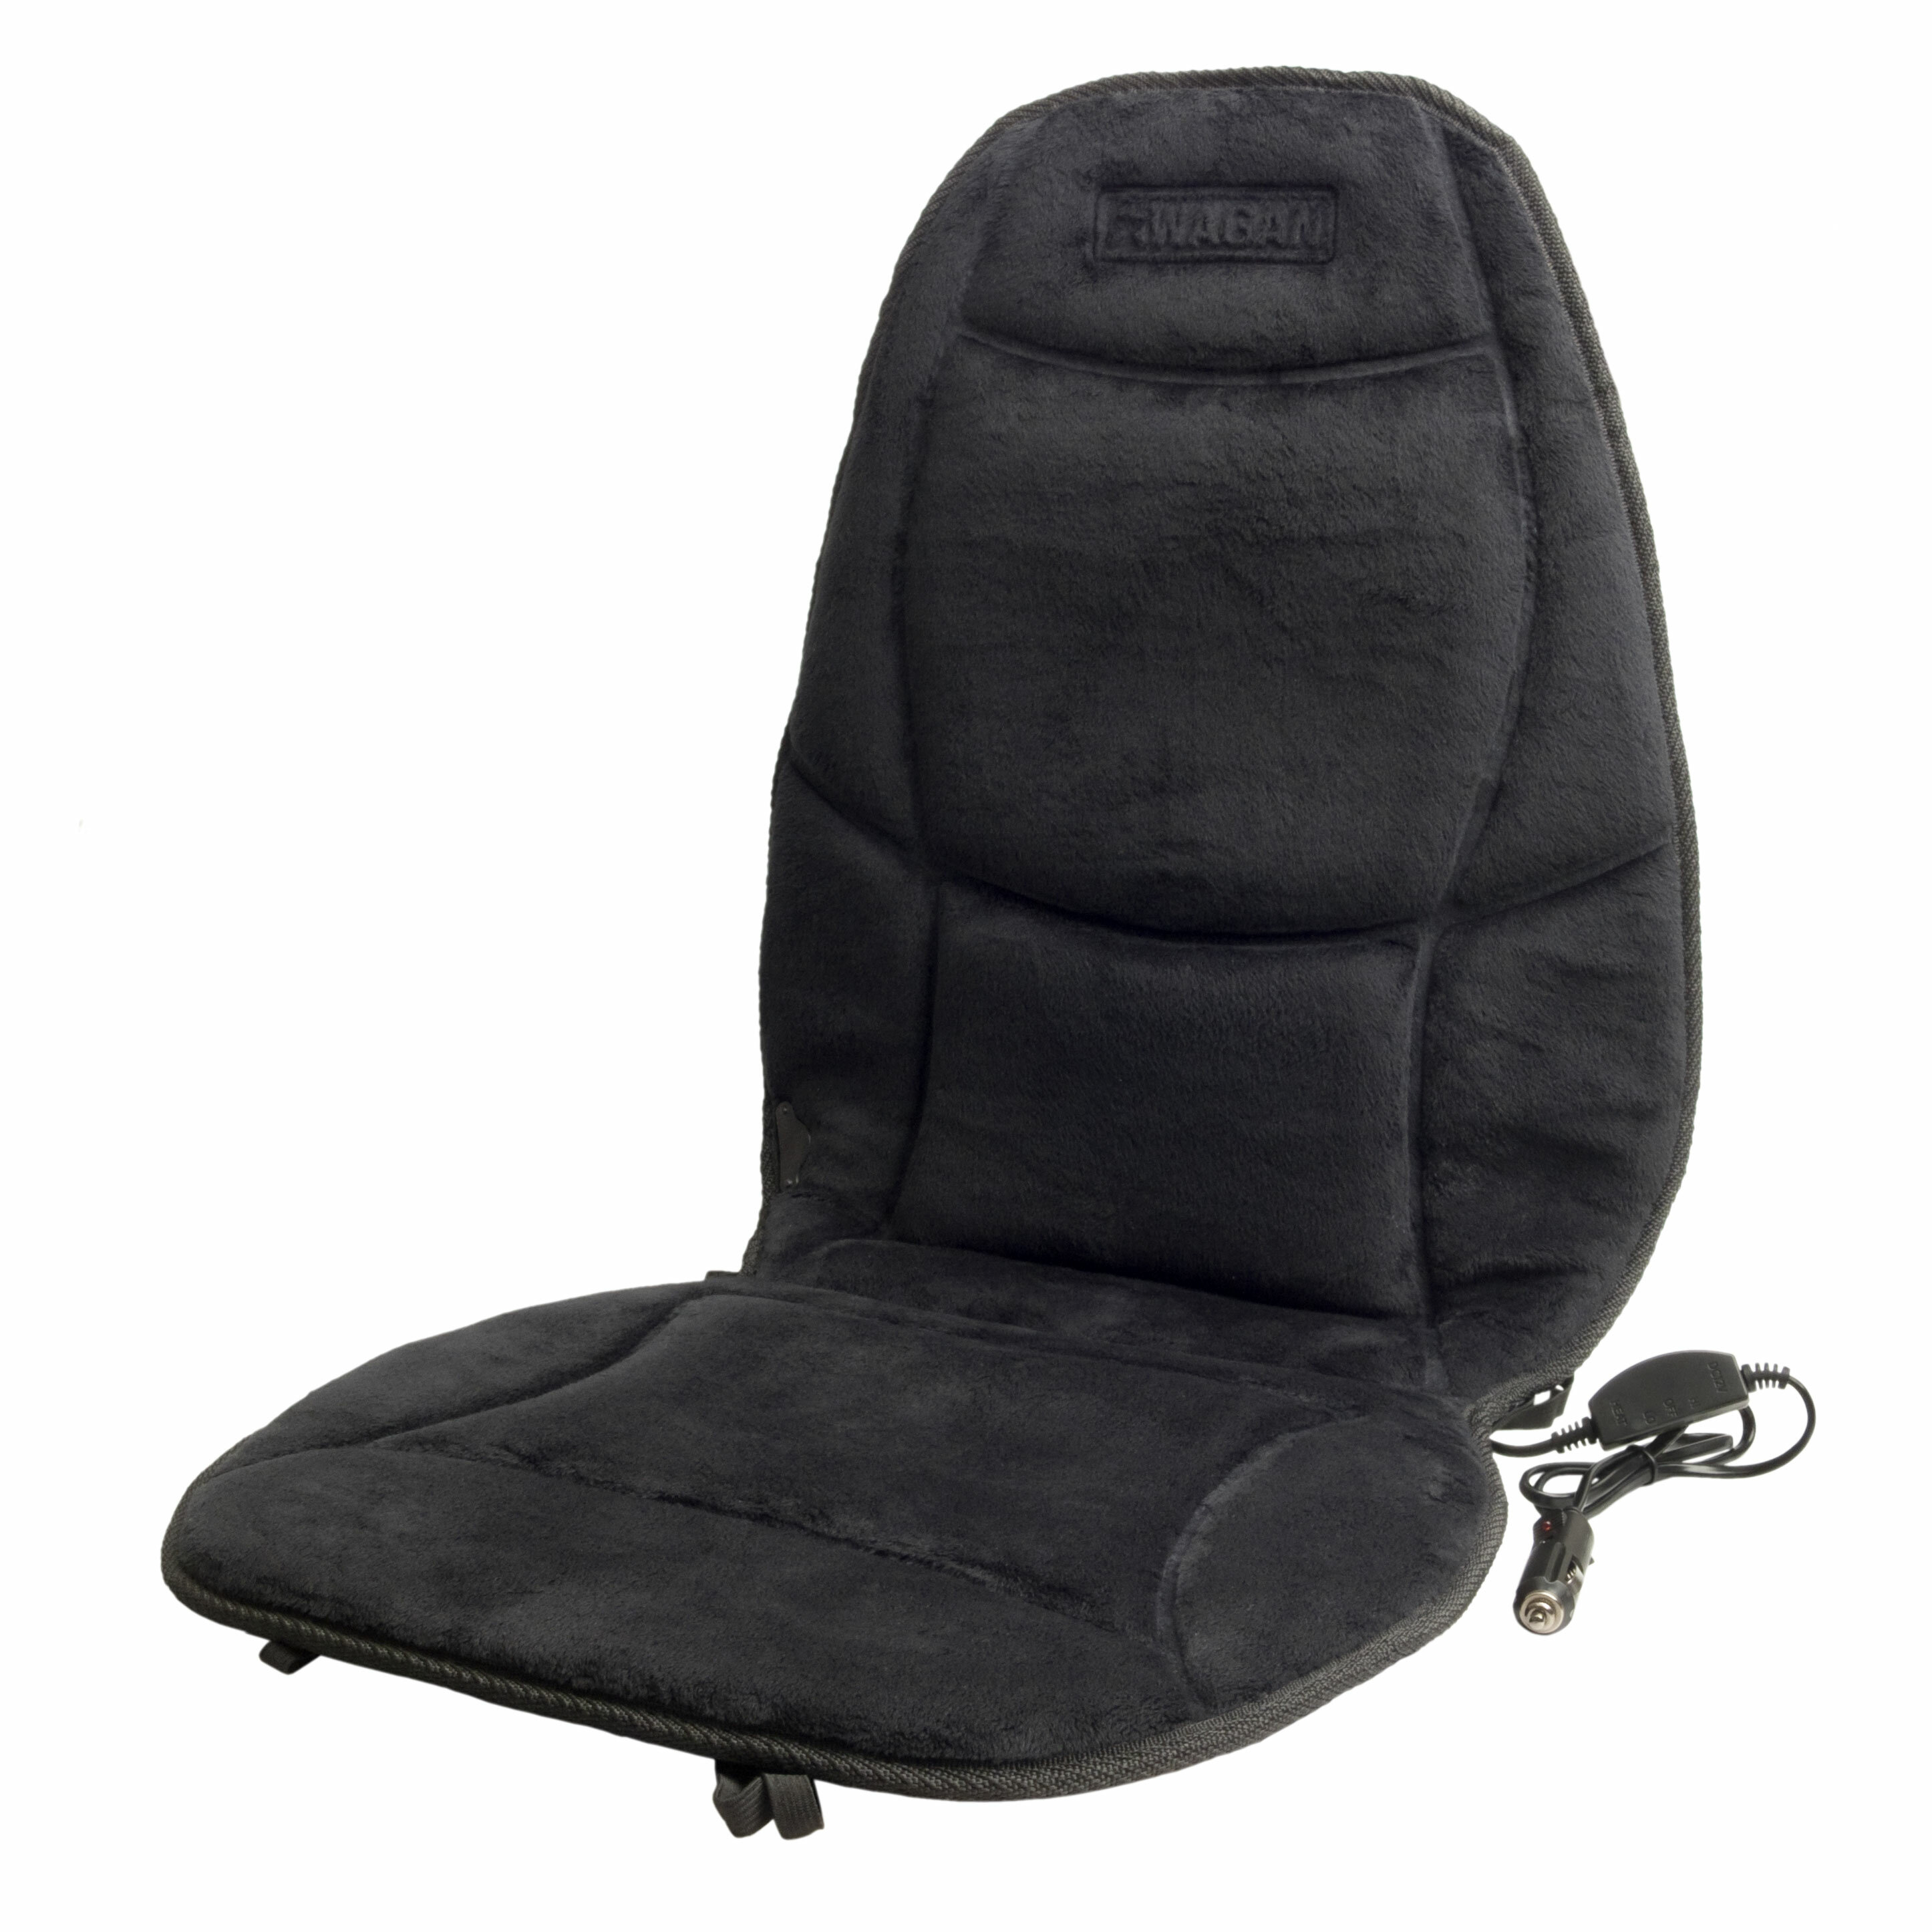 Wagan Velour Heated Seat Cushion With Lumbar Support Reviews Wayfair